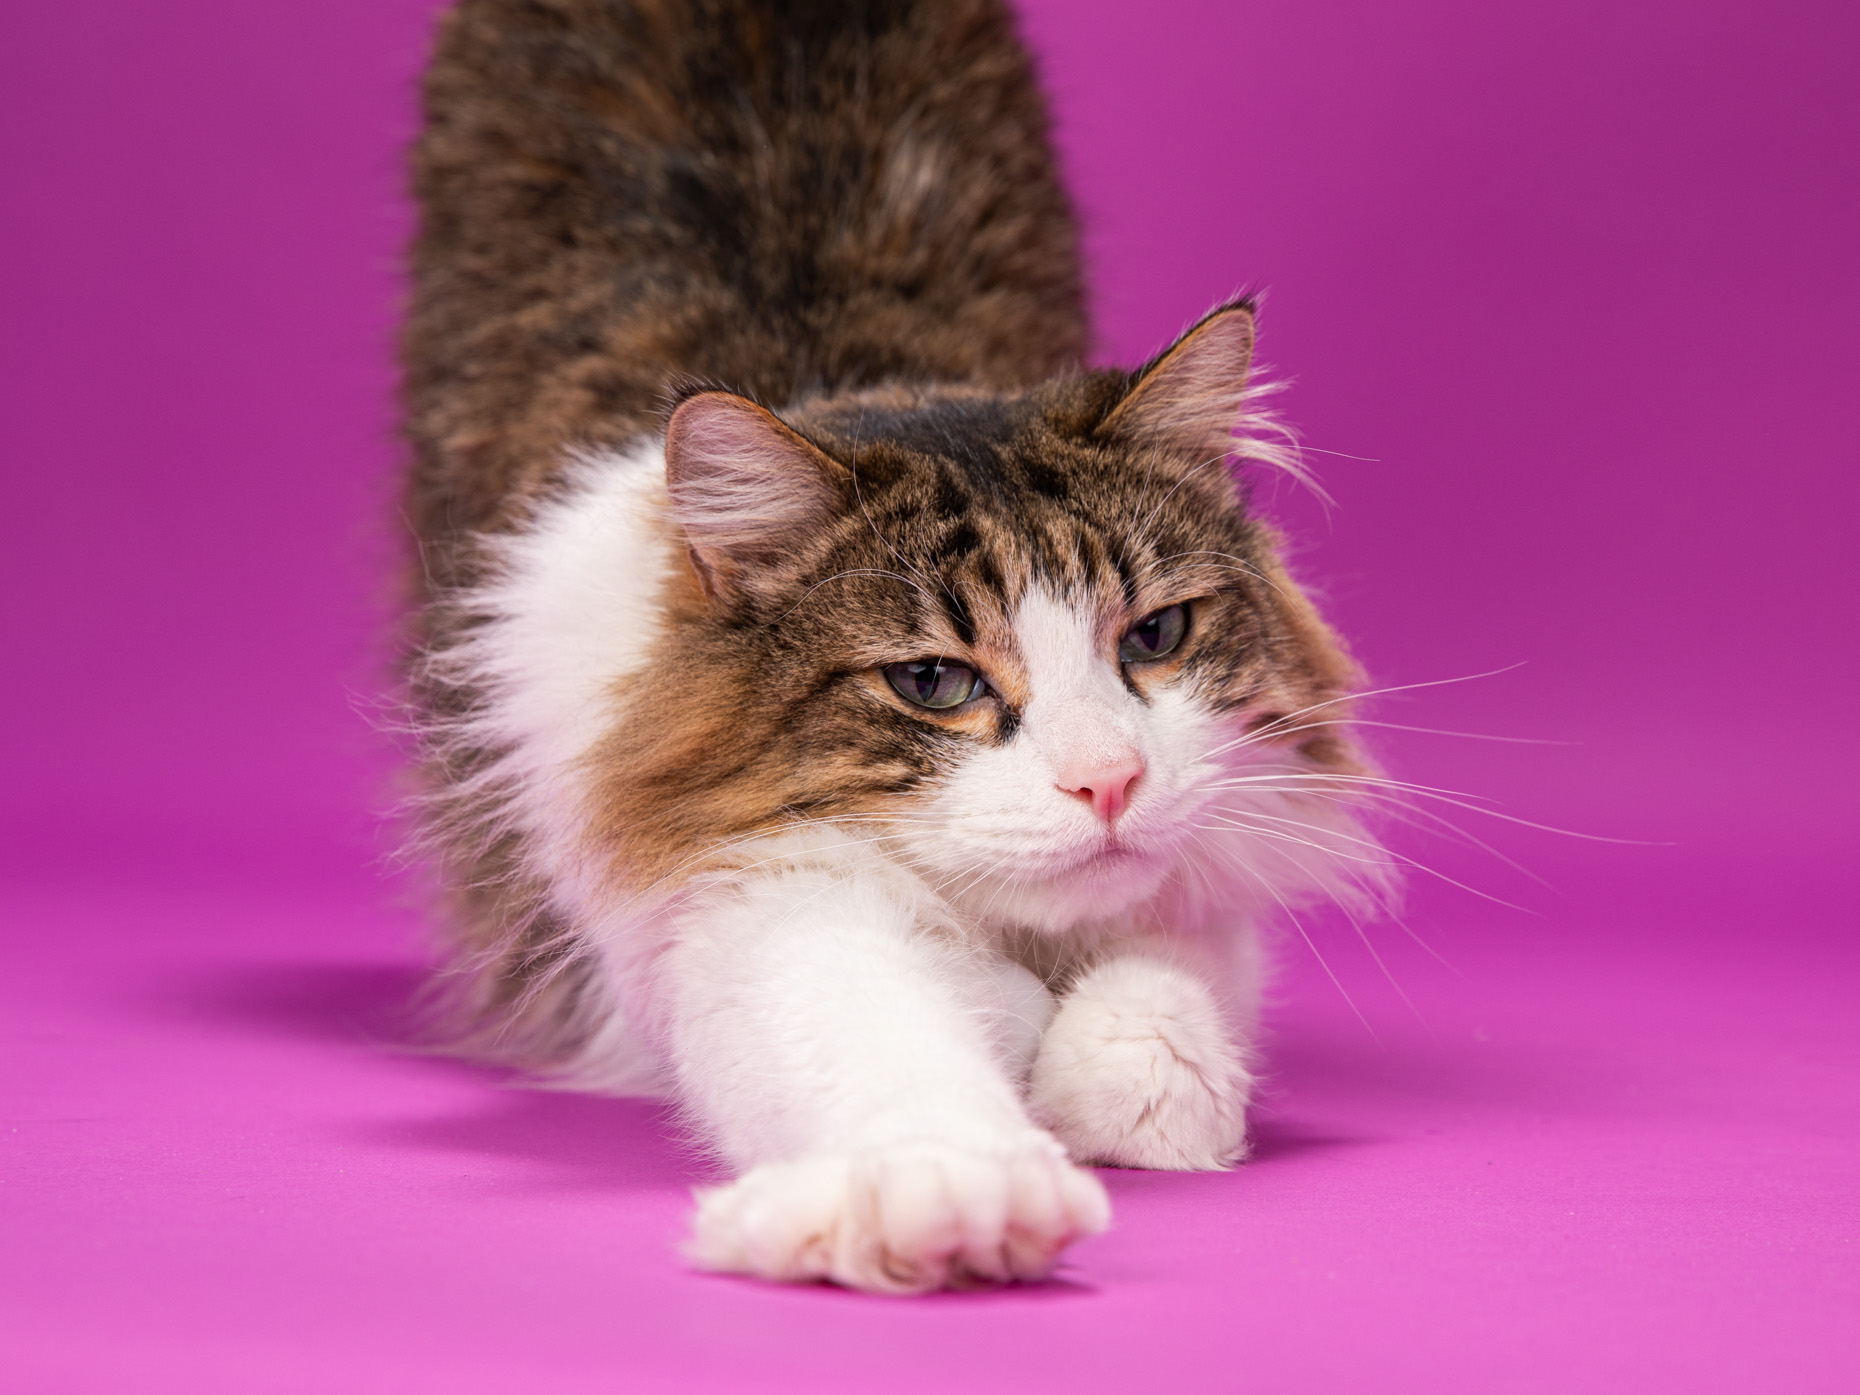 cat stretching against  purple background